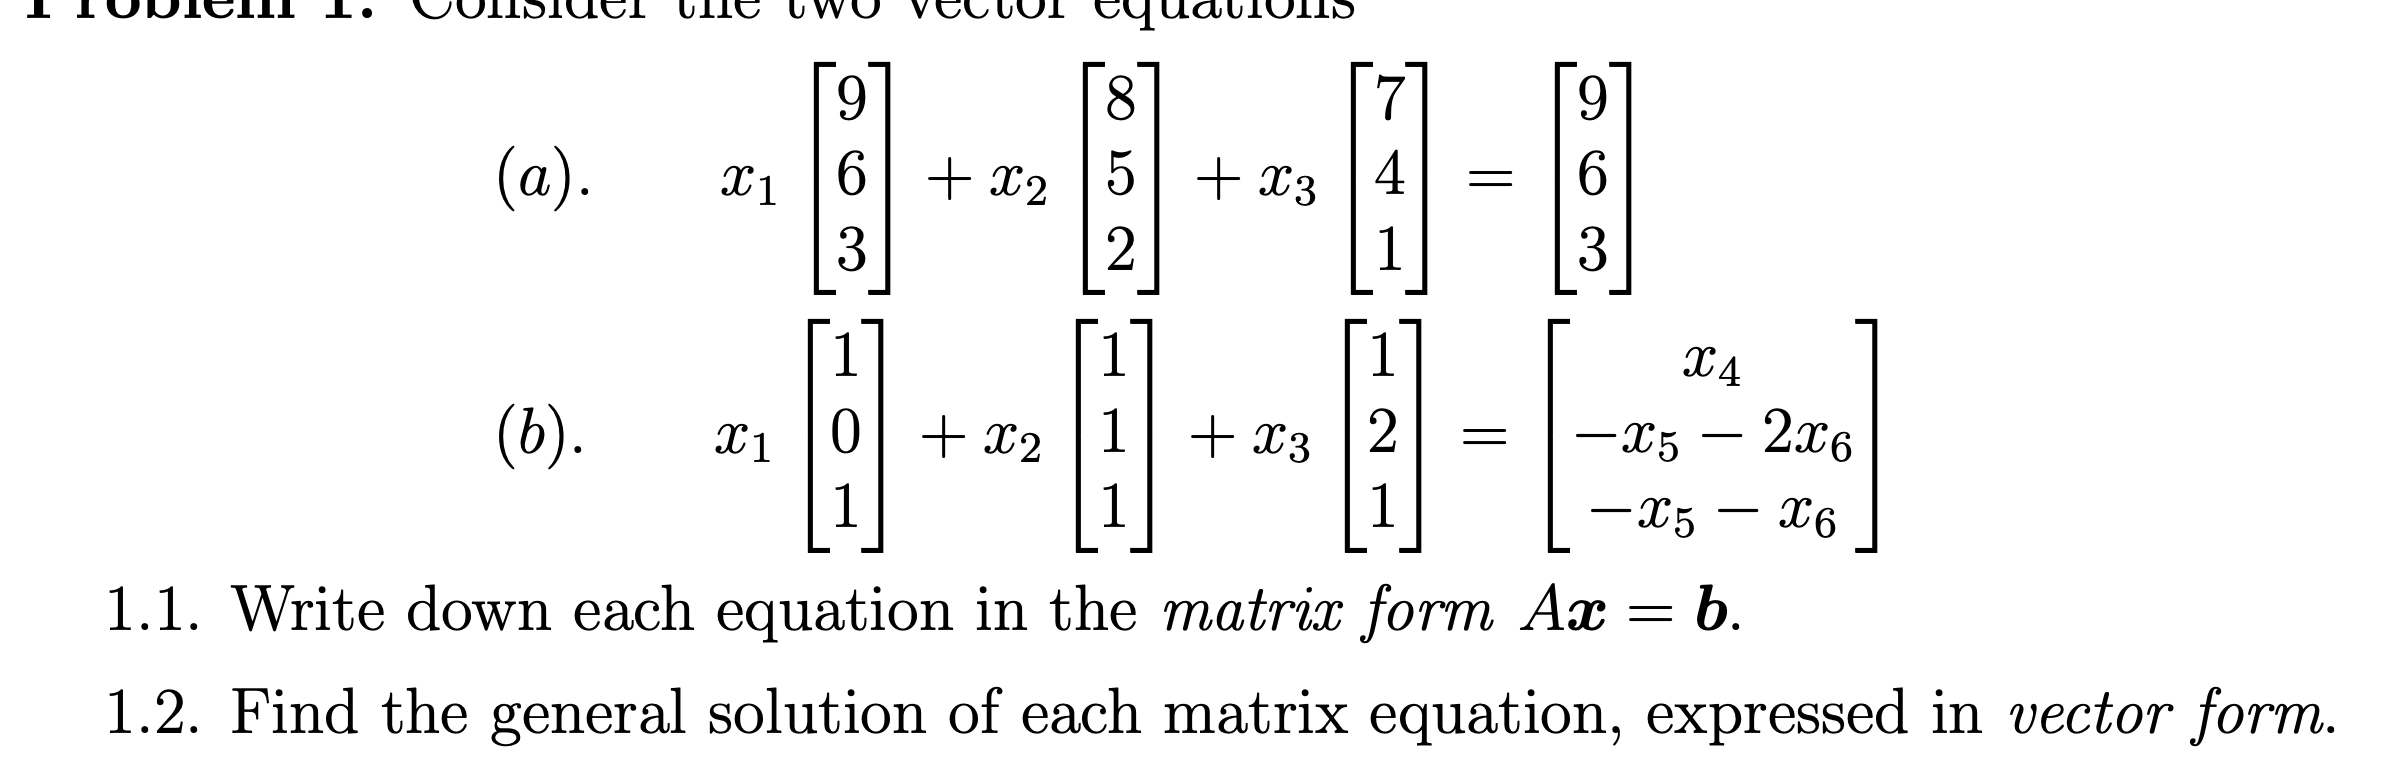 OIISIUET quatioIS 8. 6. (a). 4 6. 6  + x2  5 + x3 3 X1 %3D 1 X4 – 2x6 0 + x2  1 + x3 (b). -X5 x1 1 1 -X5 X6 1.1. Write down each equation in the matrix form Ax = b. 1.2. Find the general solution of each matrix equation, expressed in vector form.